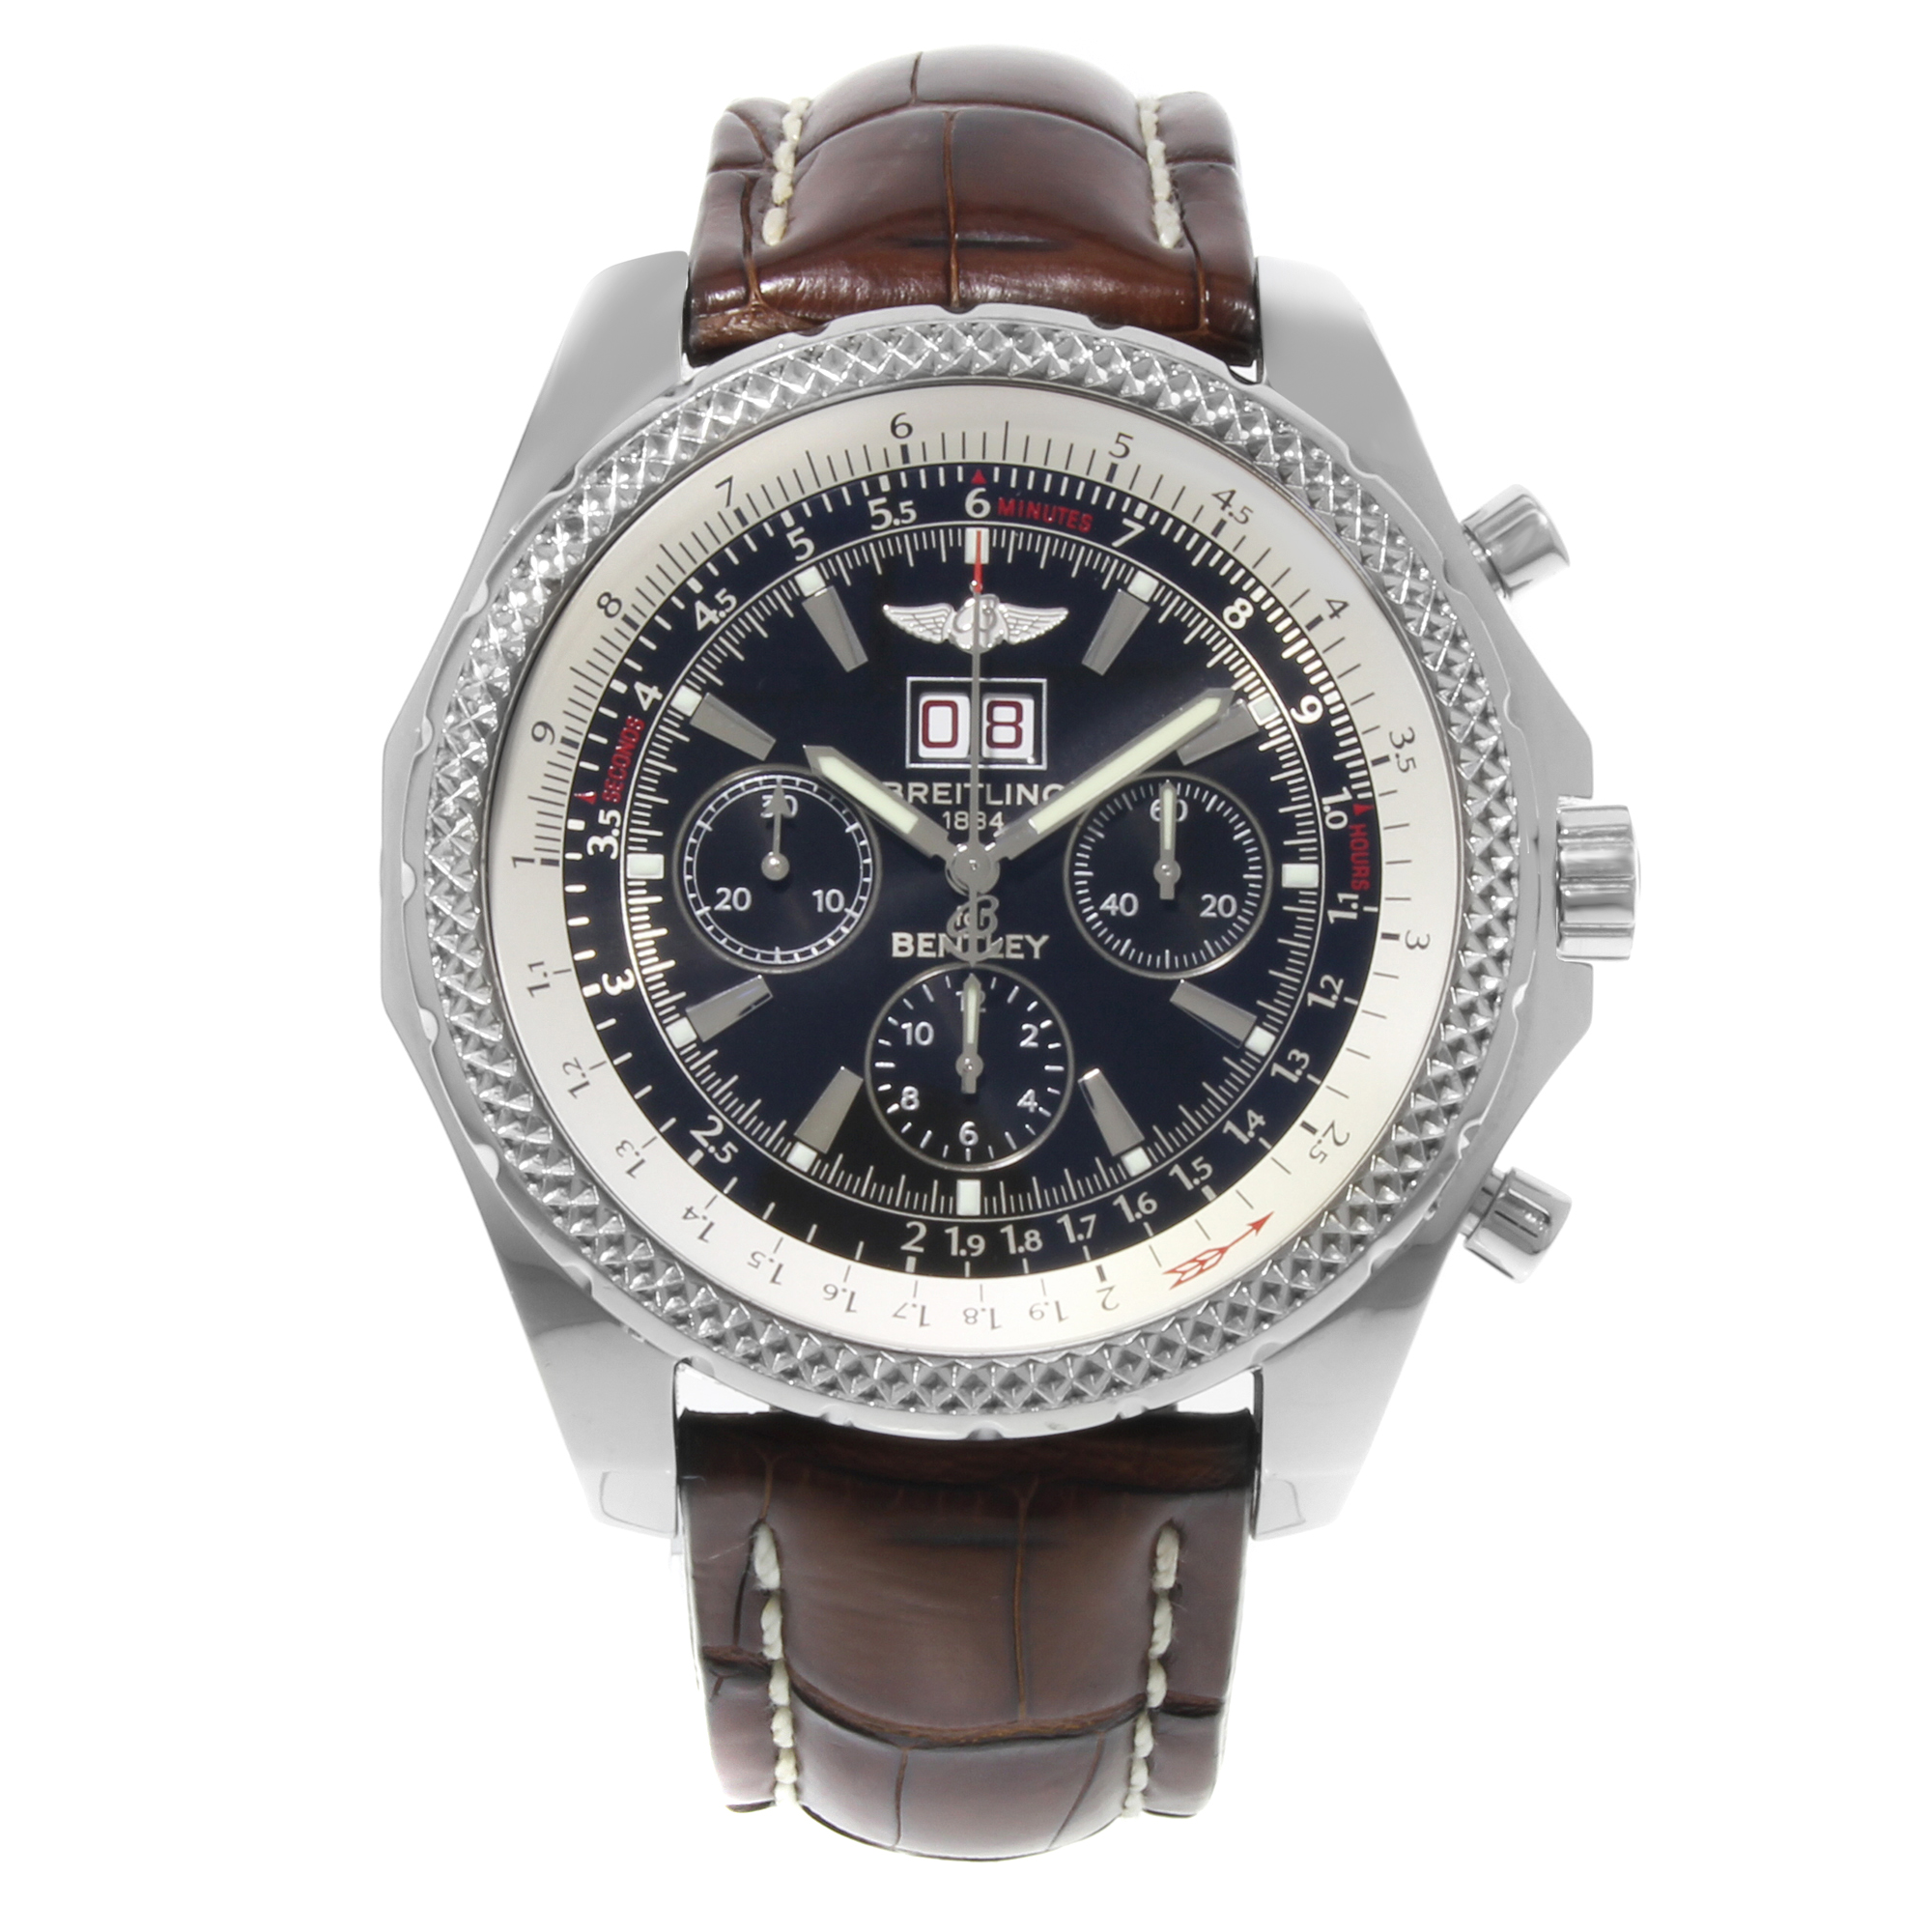 Breitling Stainless Steel Bentley Automatic Wristwatch Ref: Breitling Bentley 6.75 A44362 Stainless Steel Automatic